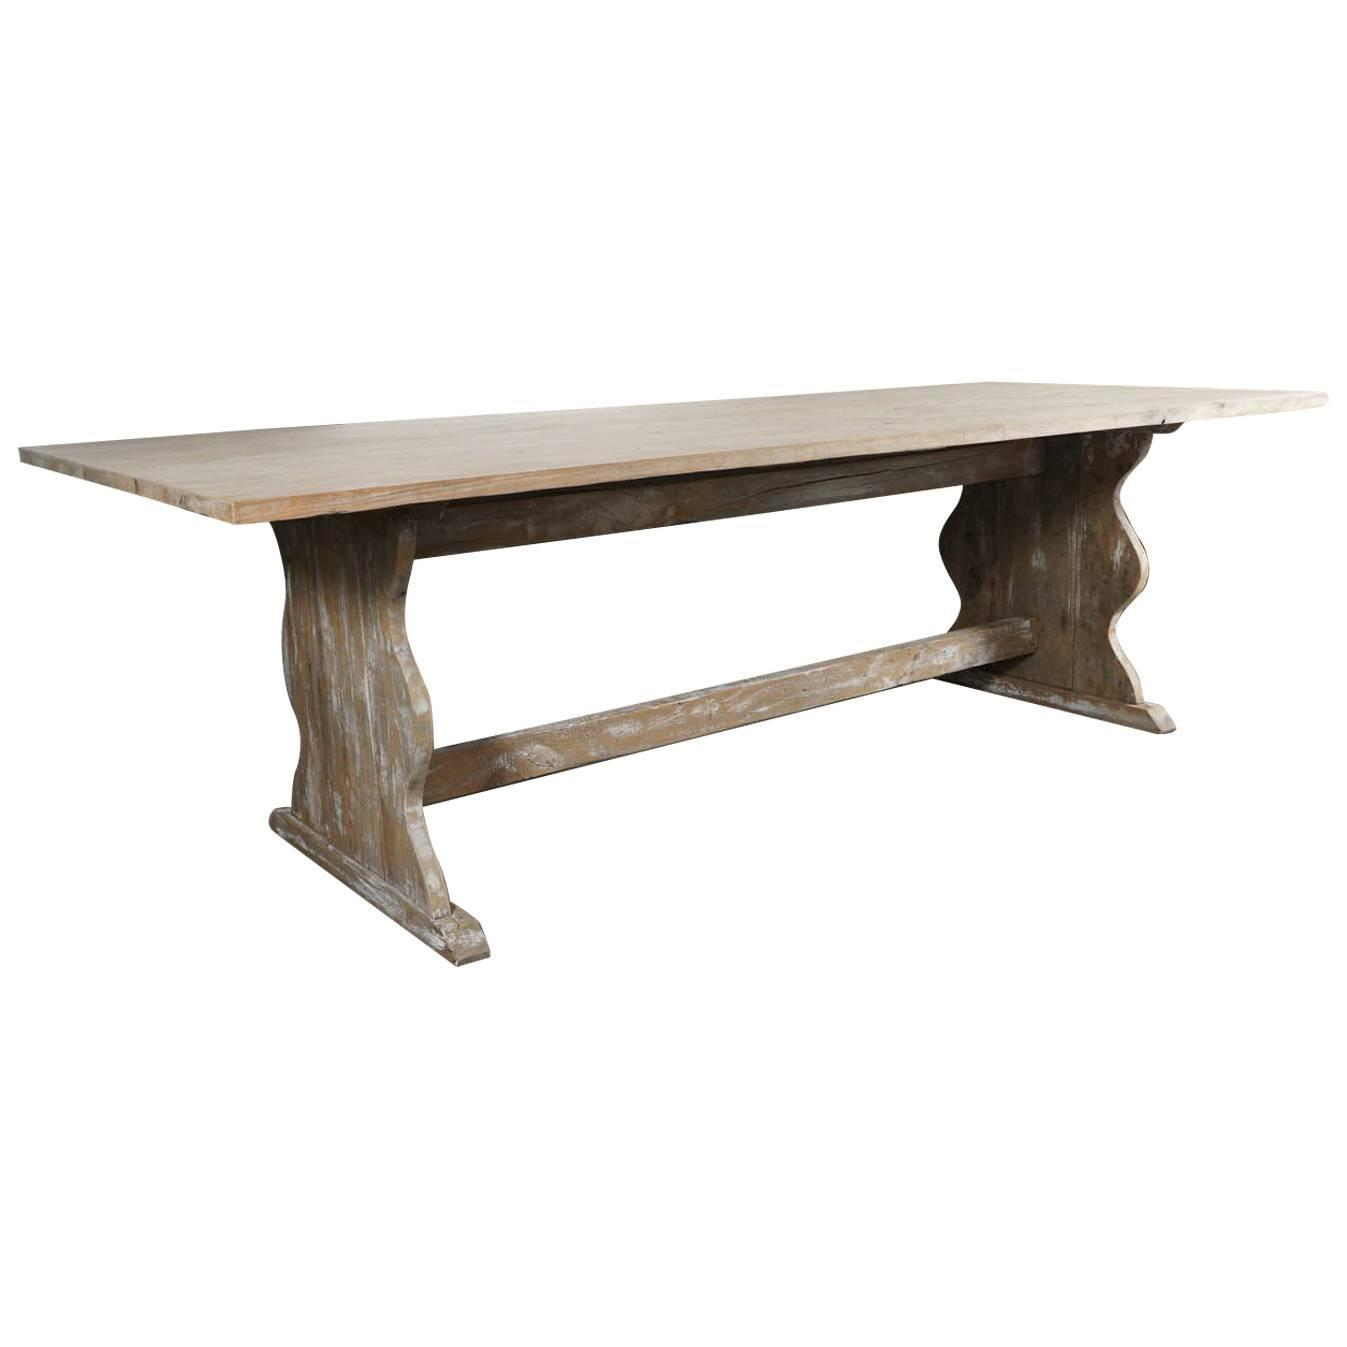 Rustic Country Farm Table For Sale at 1stdibs